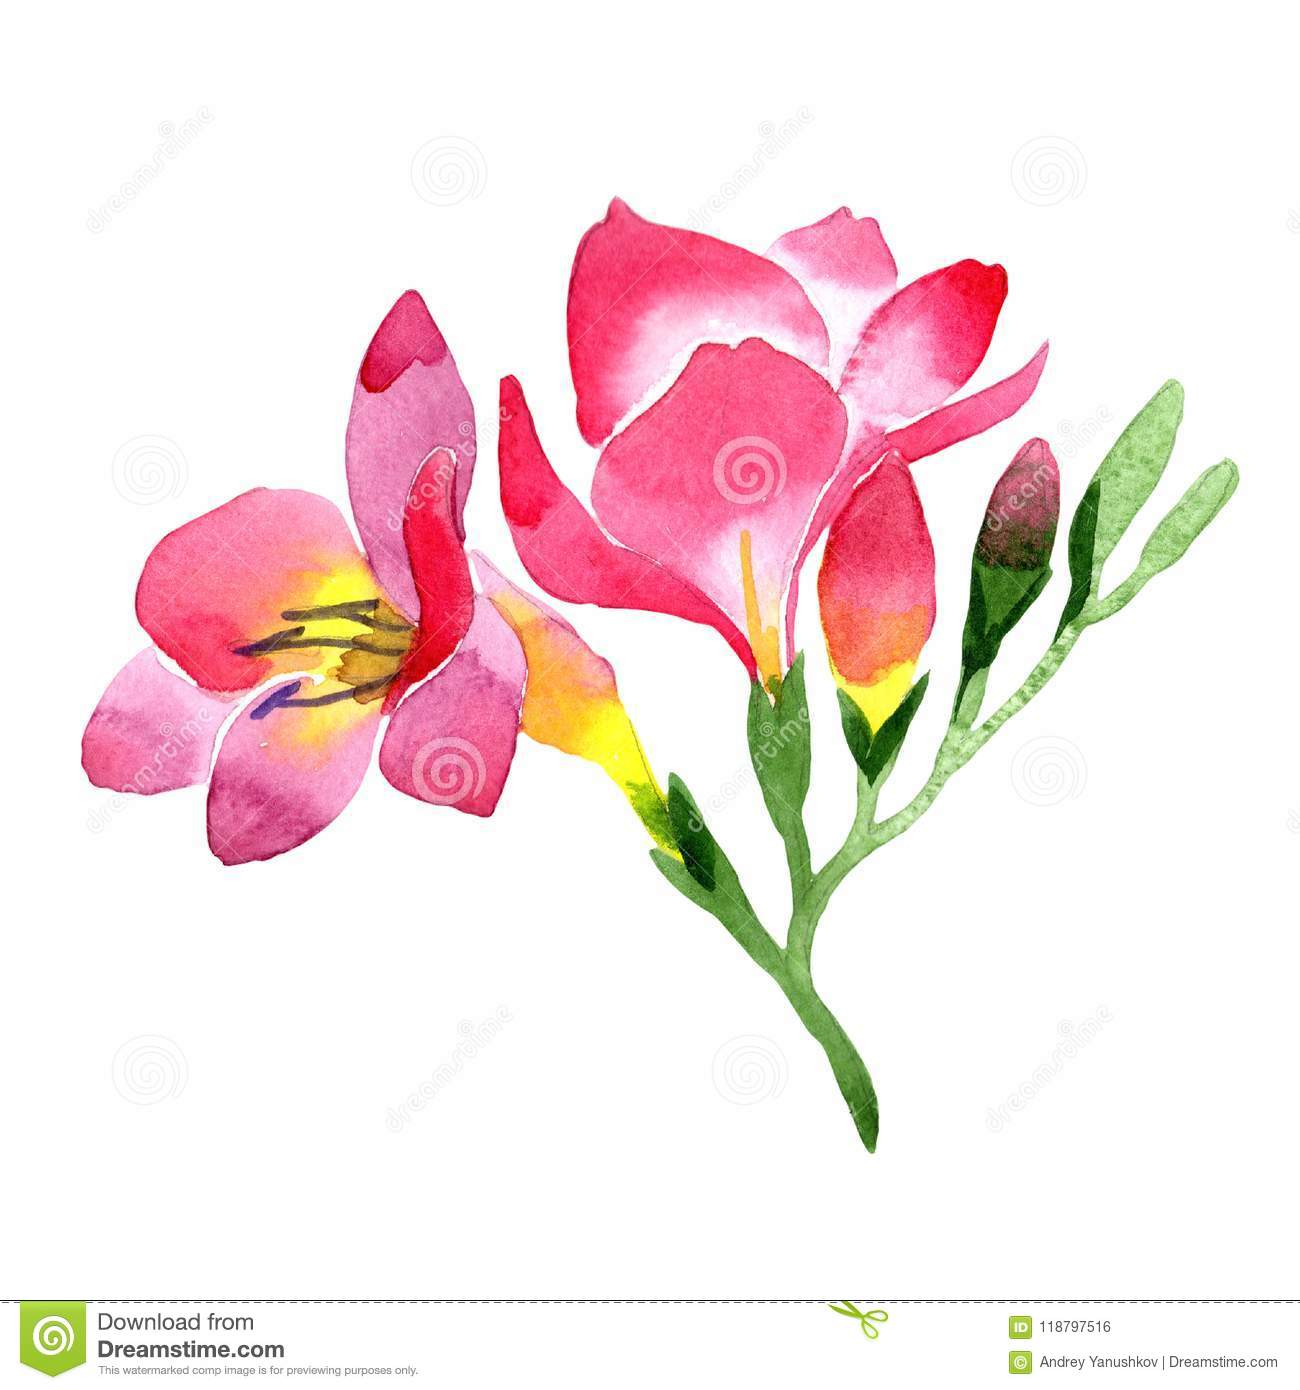 Pink freesia floral botanical flower wild spring leaf wildflower pink freesia floral botanical flower wild spring leaf wildflower isolated mightylinksfo